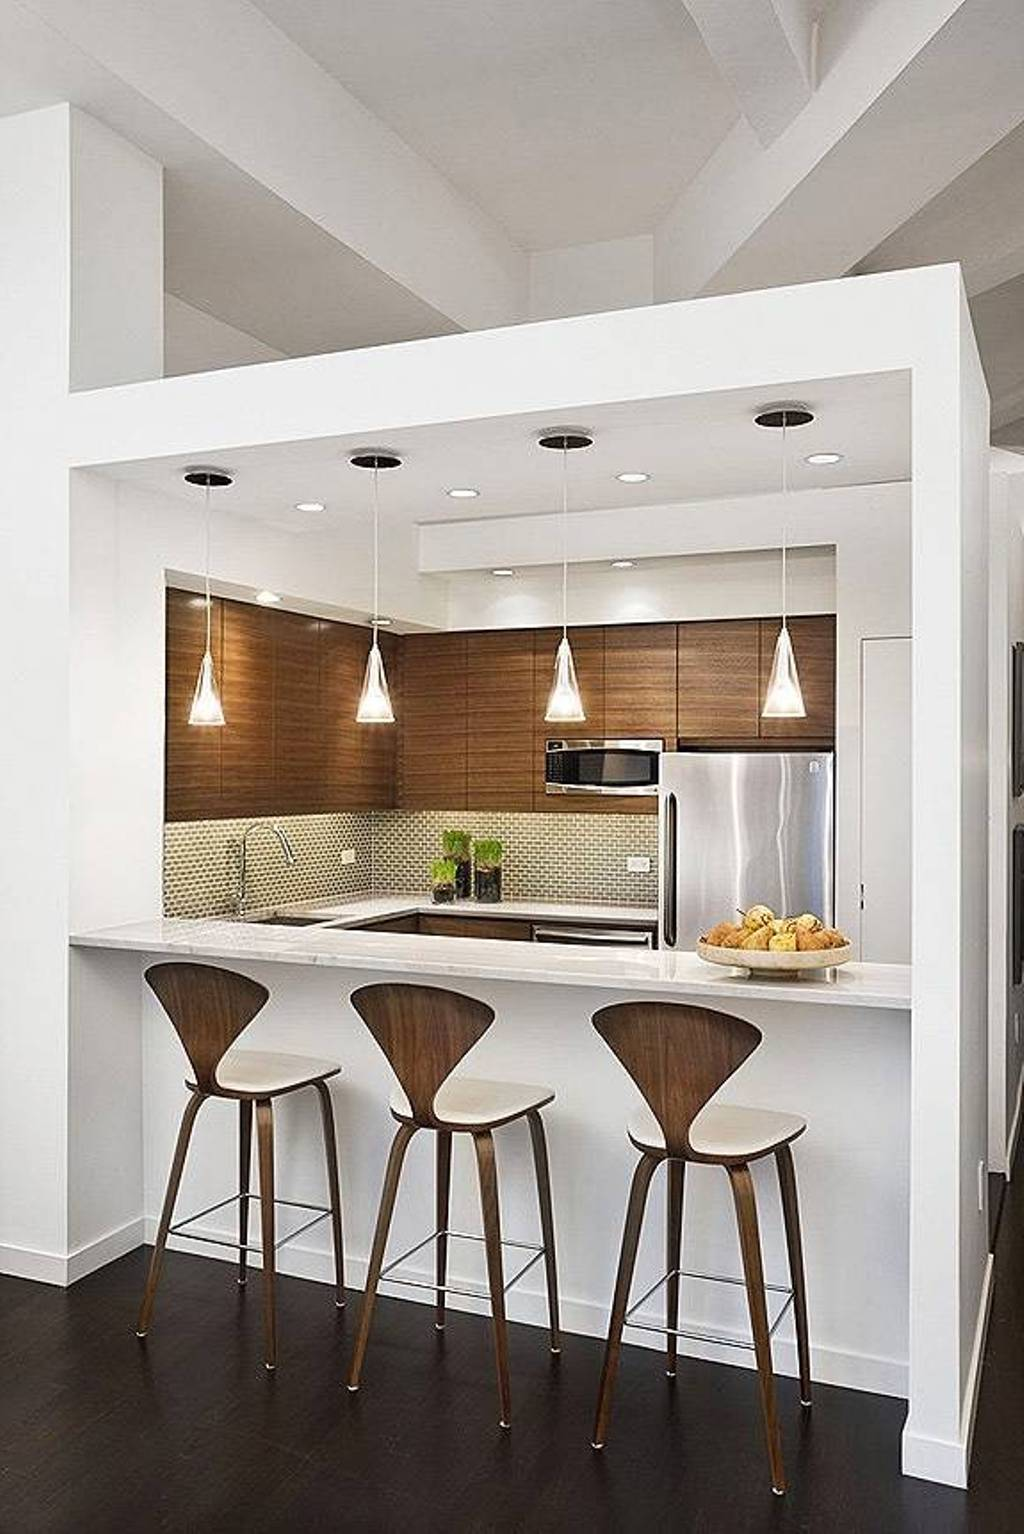 25 modern small kitchen design ideas - Barras para cocinas ...